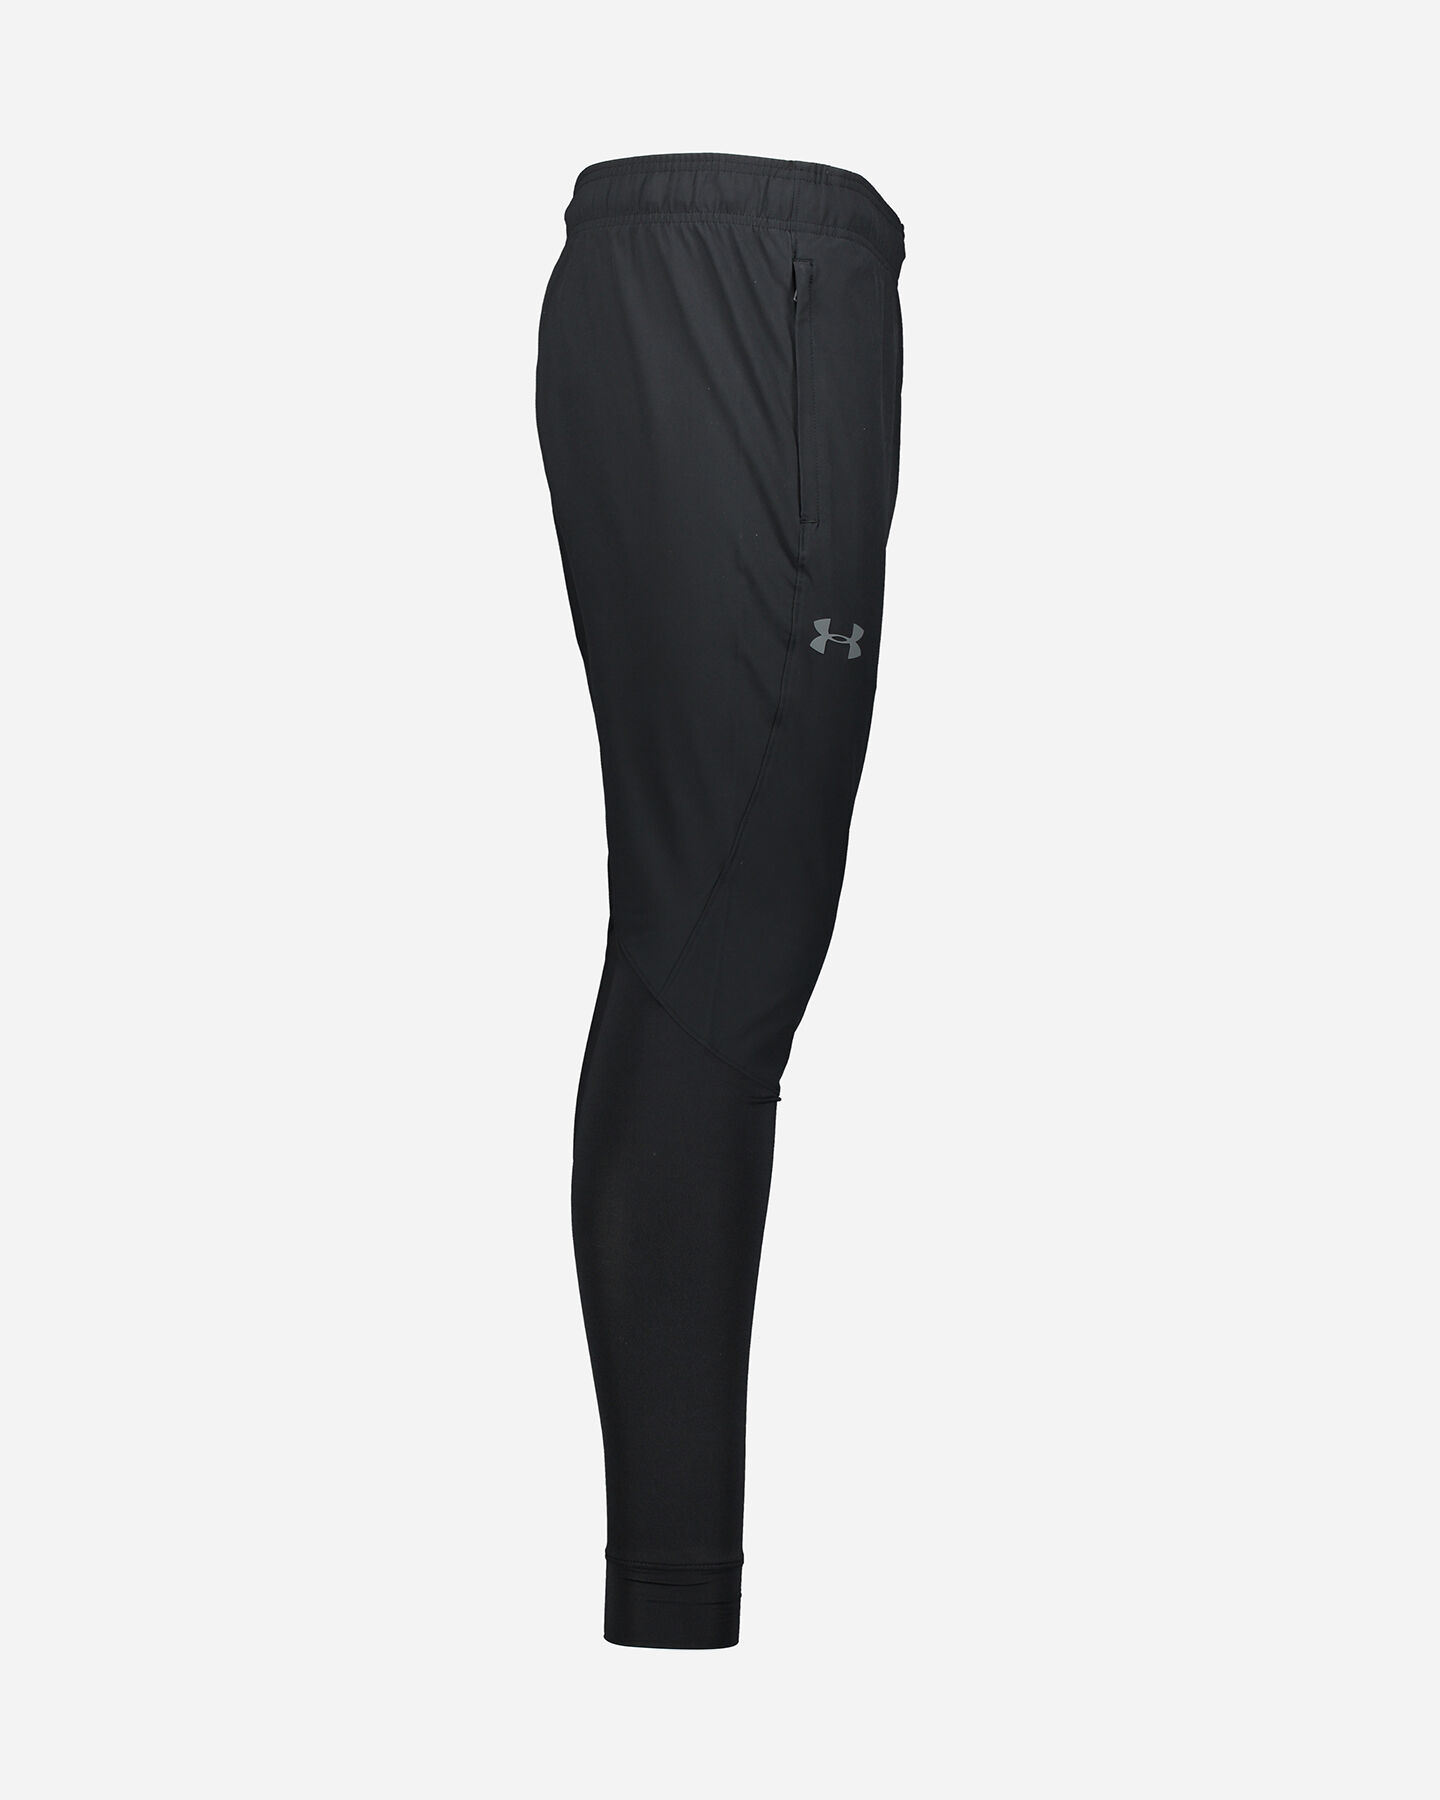 Pantalone training UNDER ARMOUR HYBRID M S5169336 scatto 1